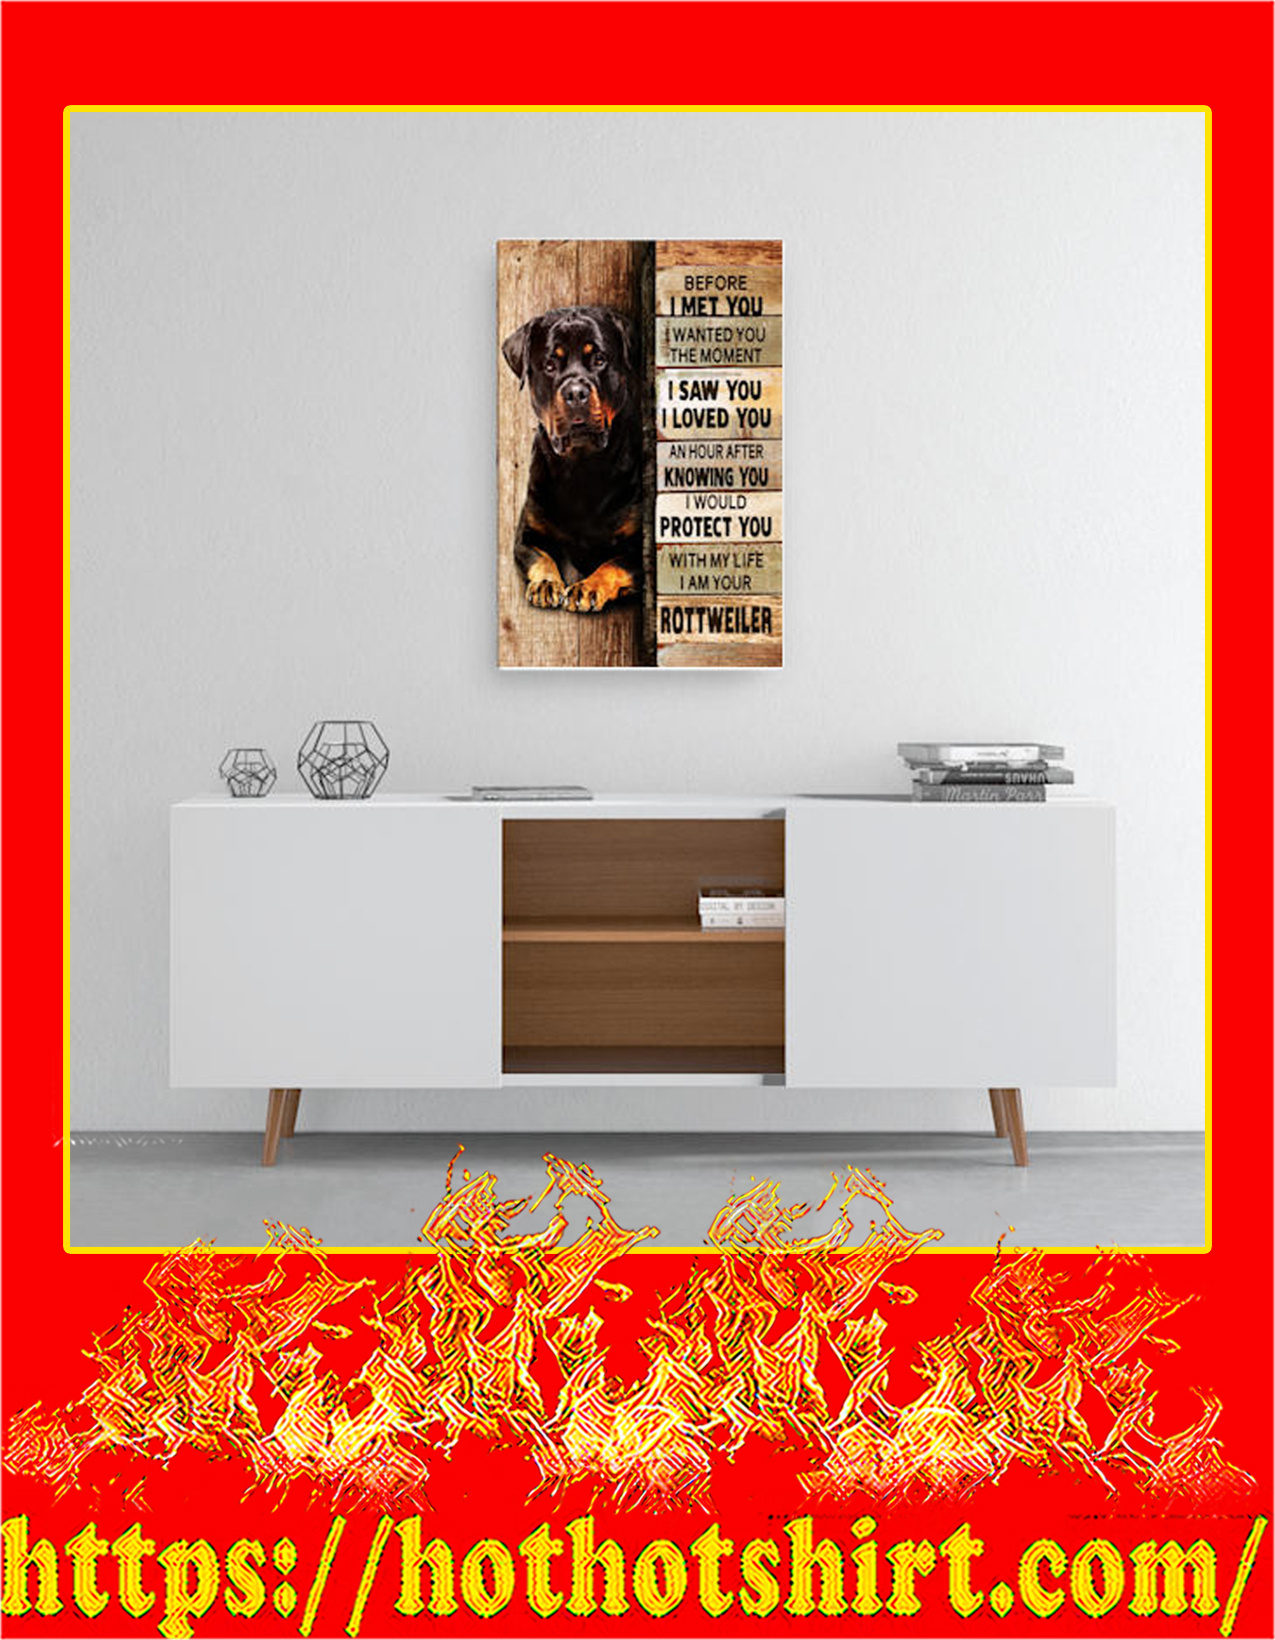 Rottweiler before i met you canvas prints - Medium size